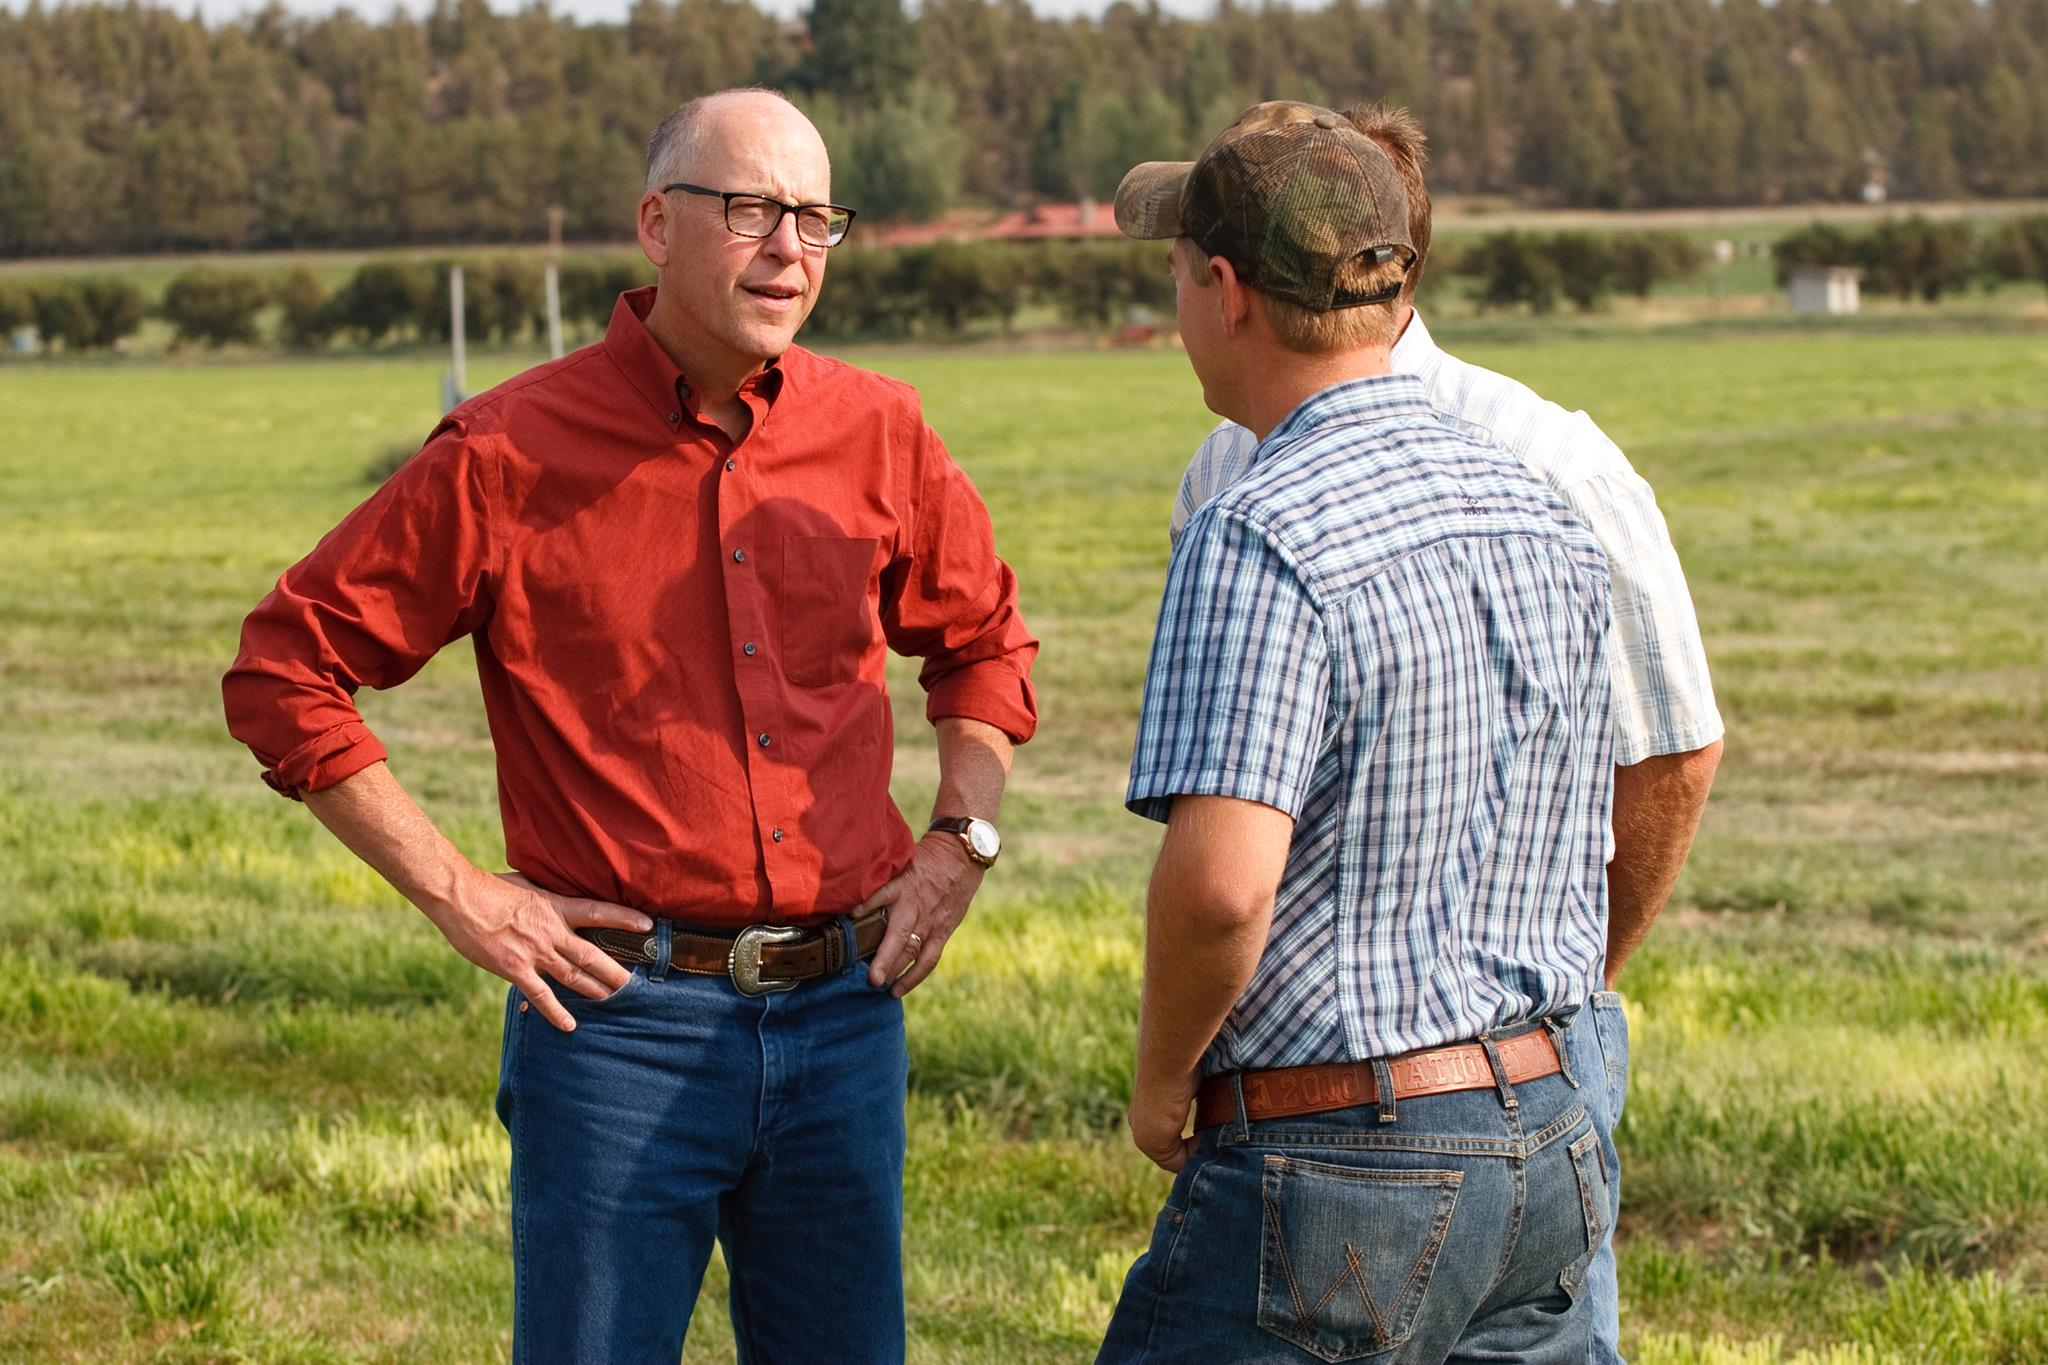 Stand with Greg Walden - Add your name!